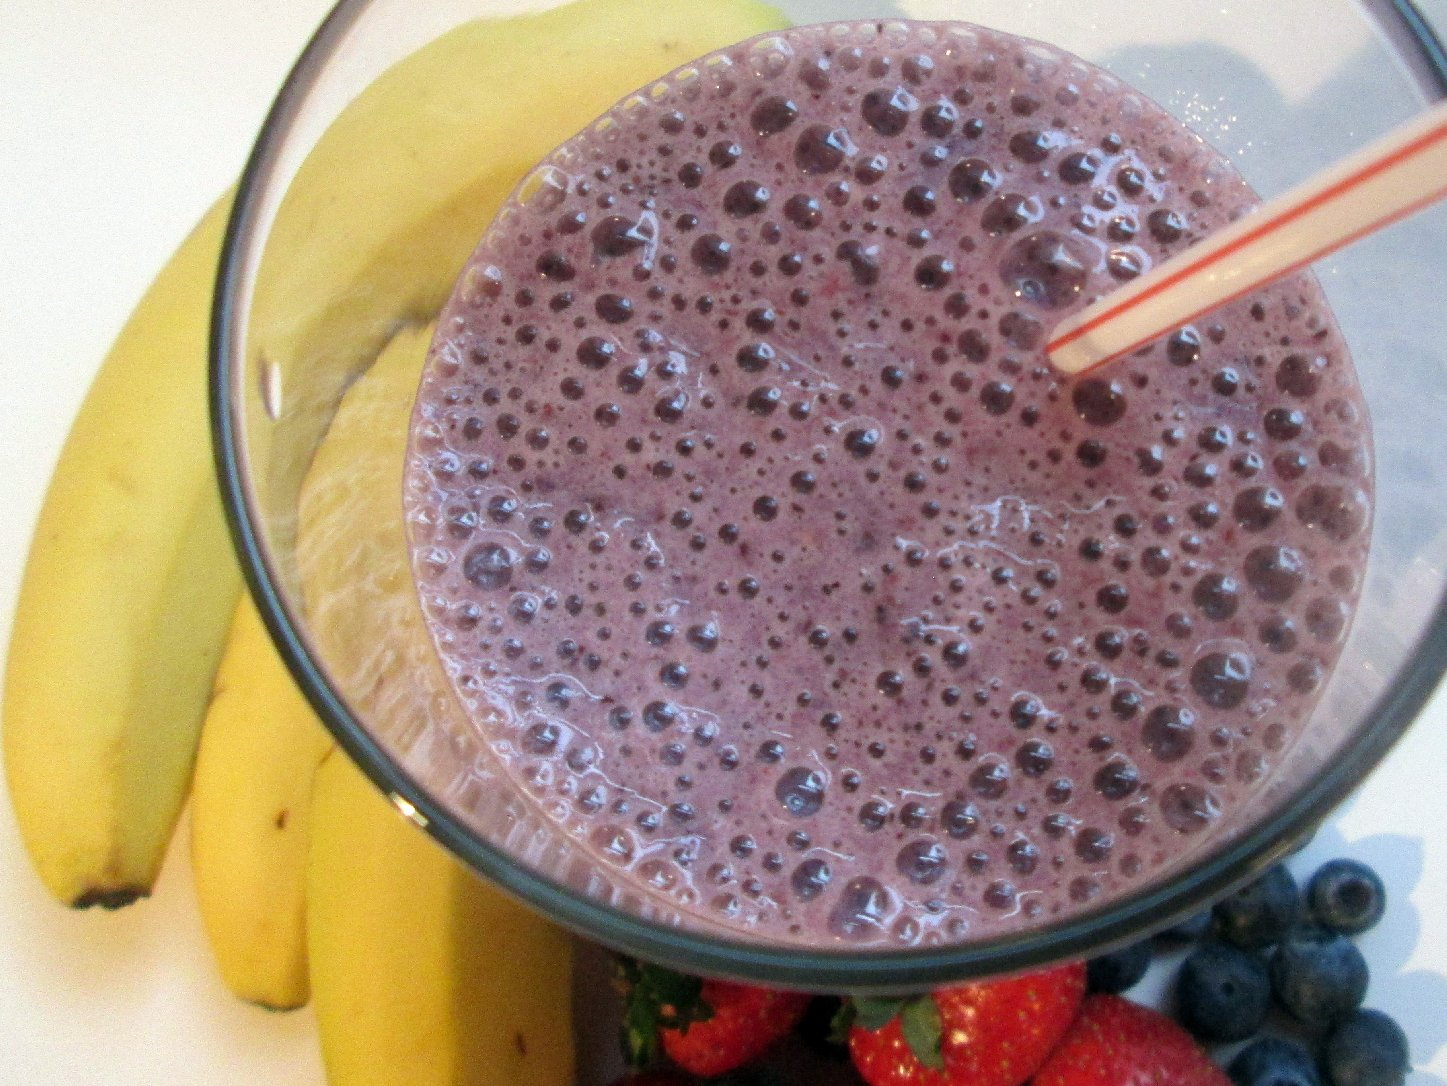 Banana Berry Smoothie With Almond Milk. Photo: Laura B. Weiss/NPR